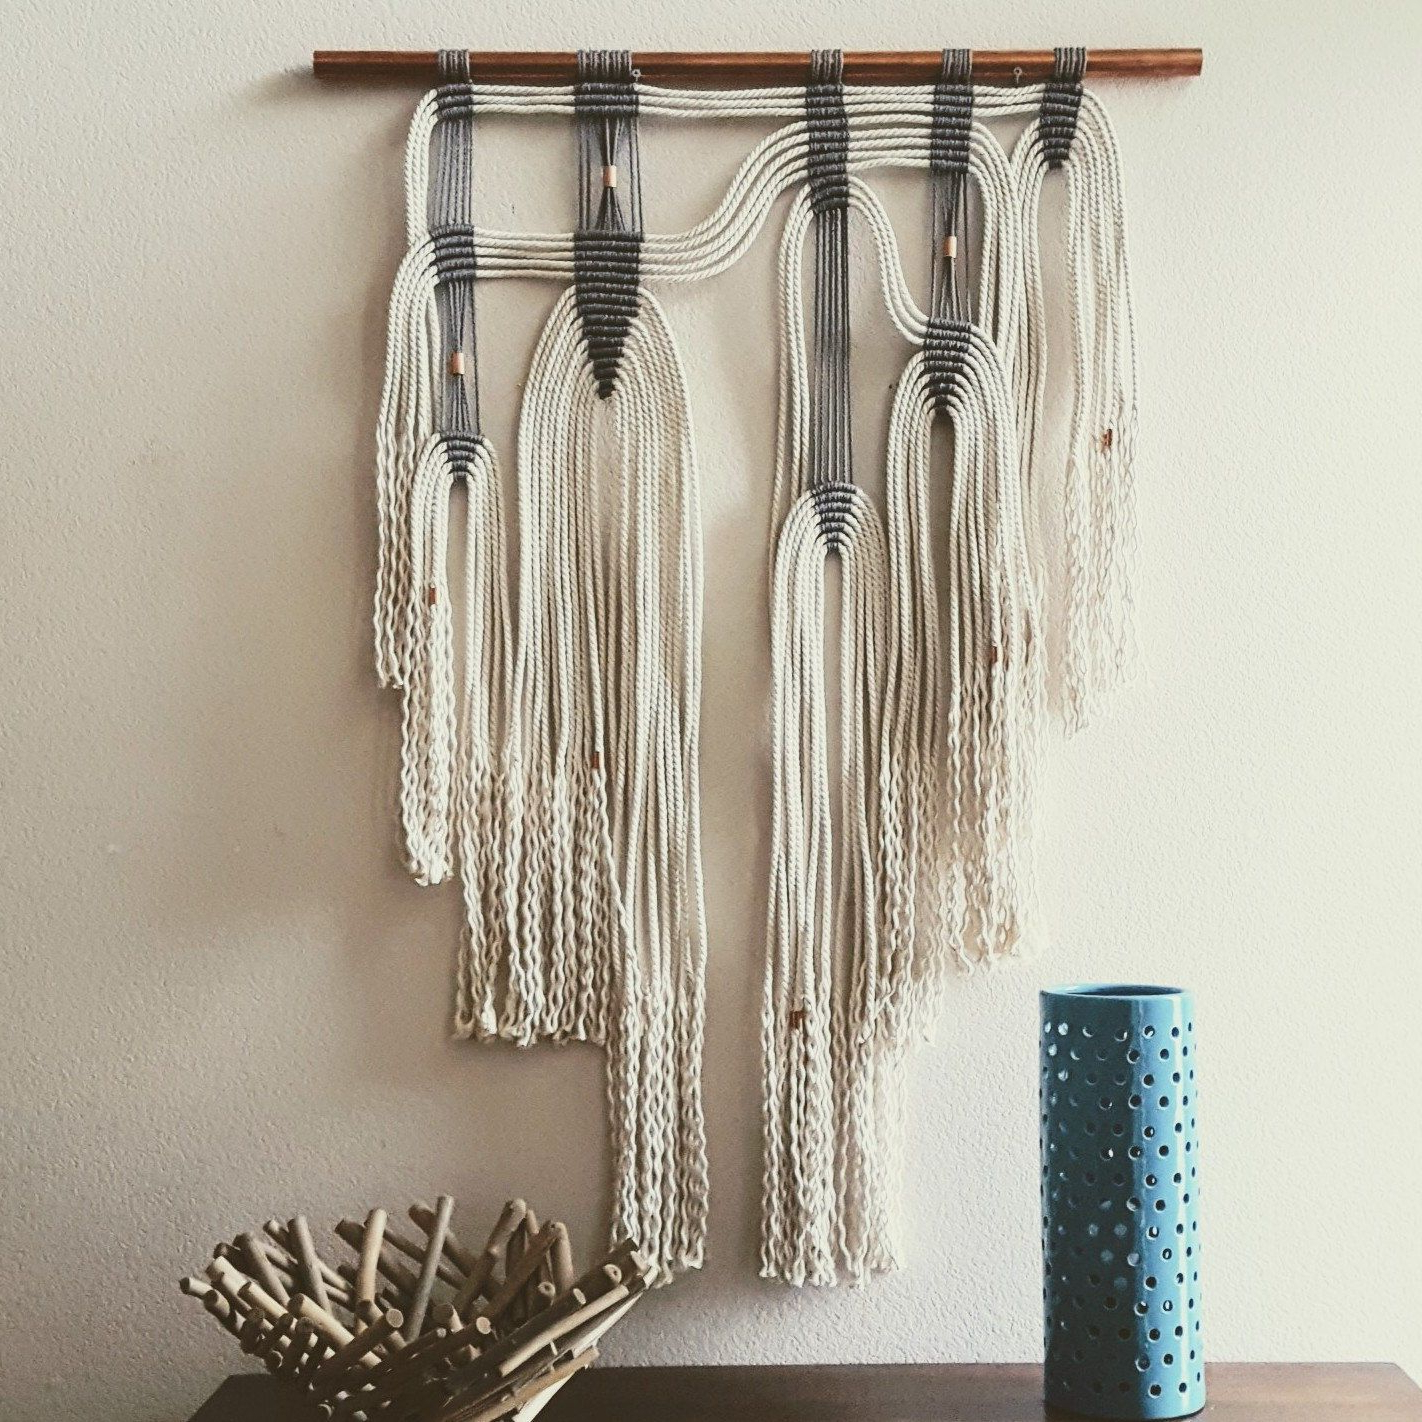 Blended Fabric Saber Wall Hangings With Rod With Preferred Modern Geometric Macrame Wall Hanging On Brass Ring (muriel (View 19 of 20)